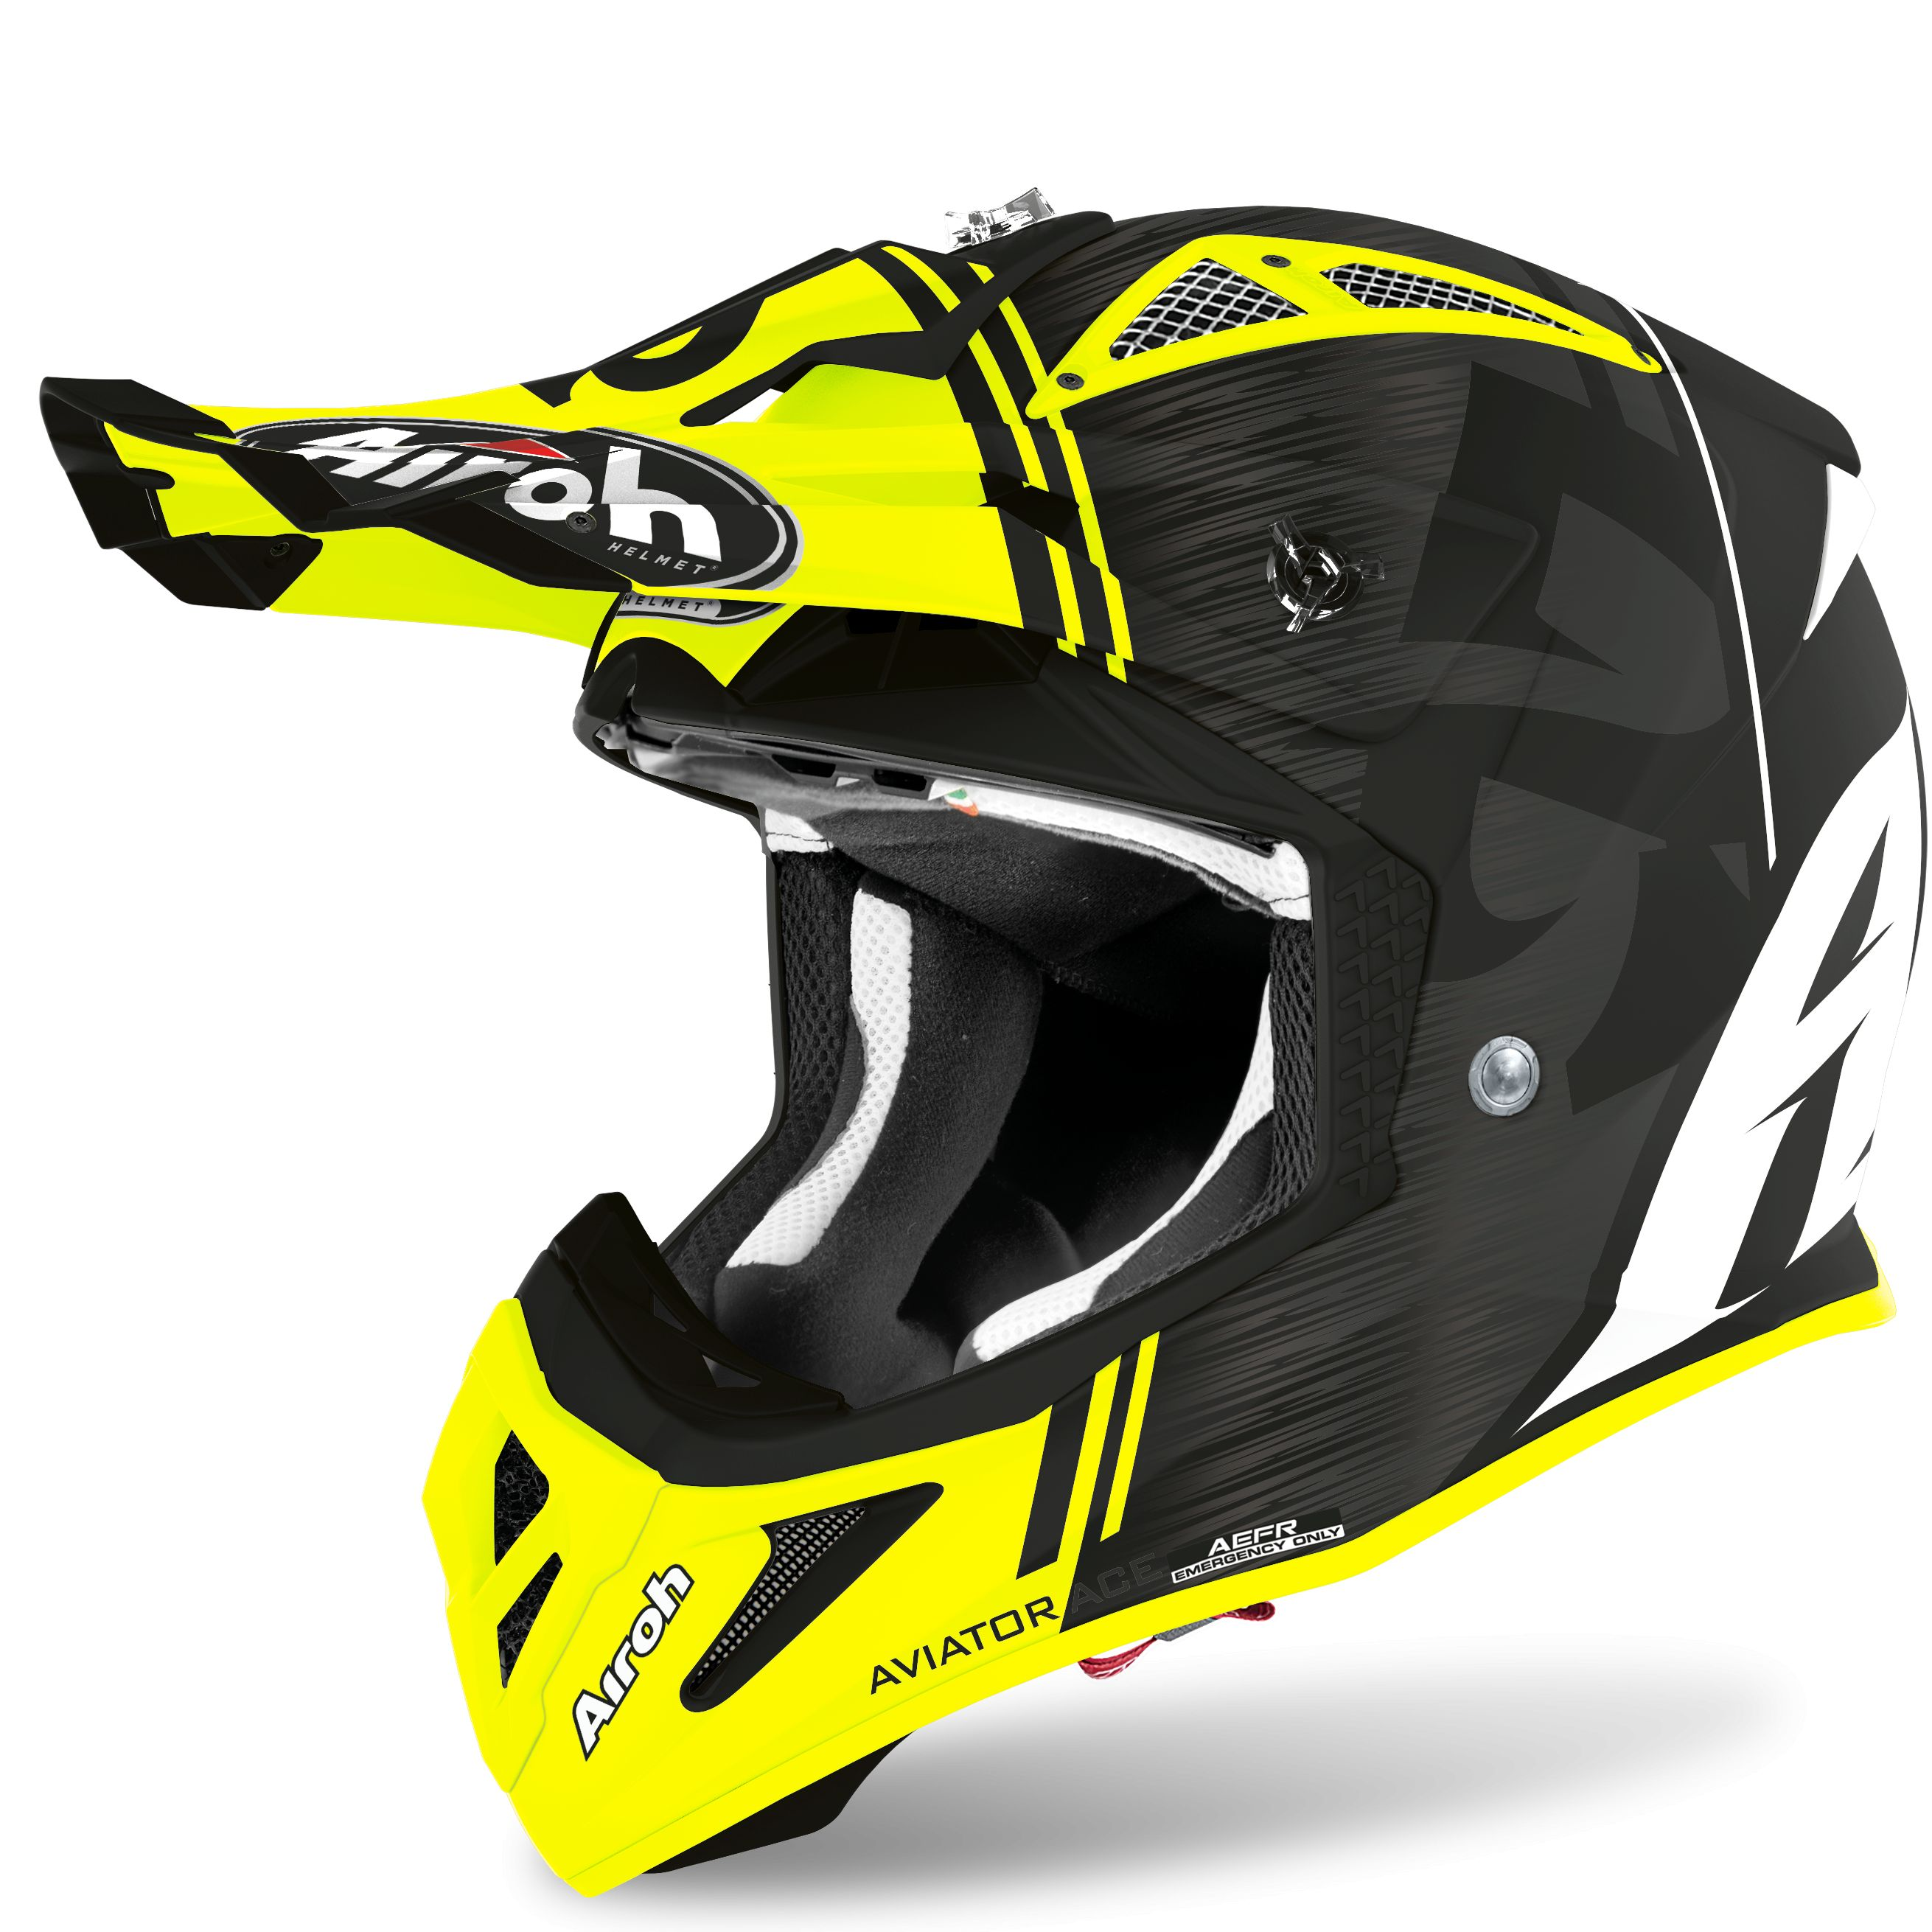 Casque cross Airoh AVIATOR ACE - KYBON - YELLOW MATT 2020